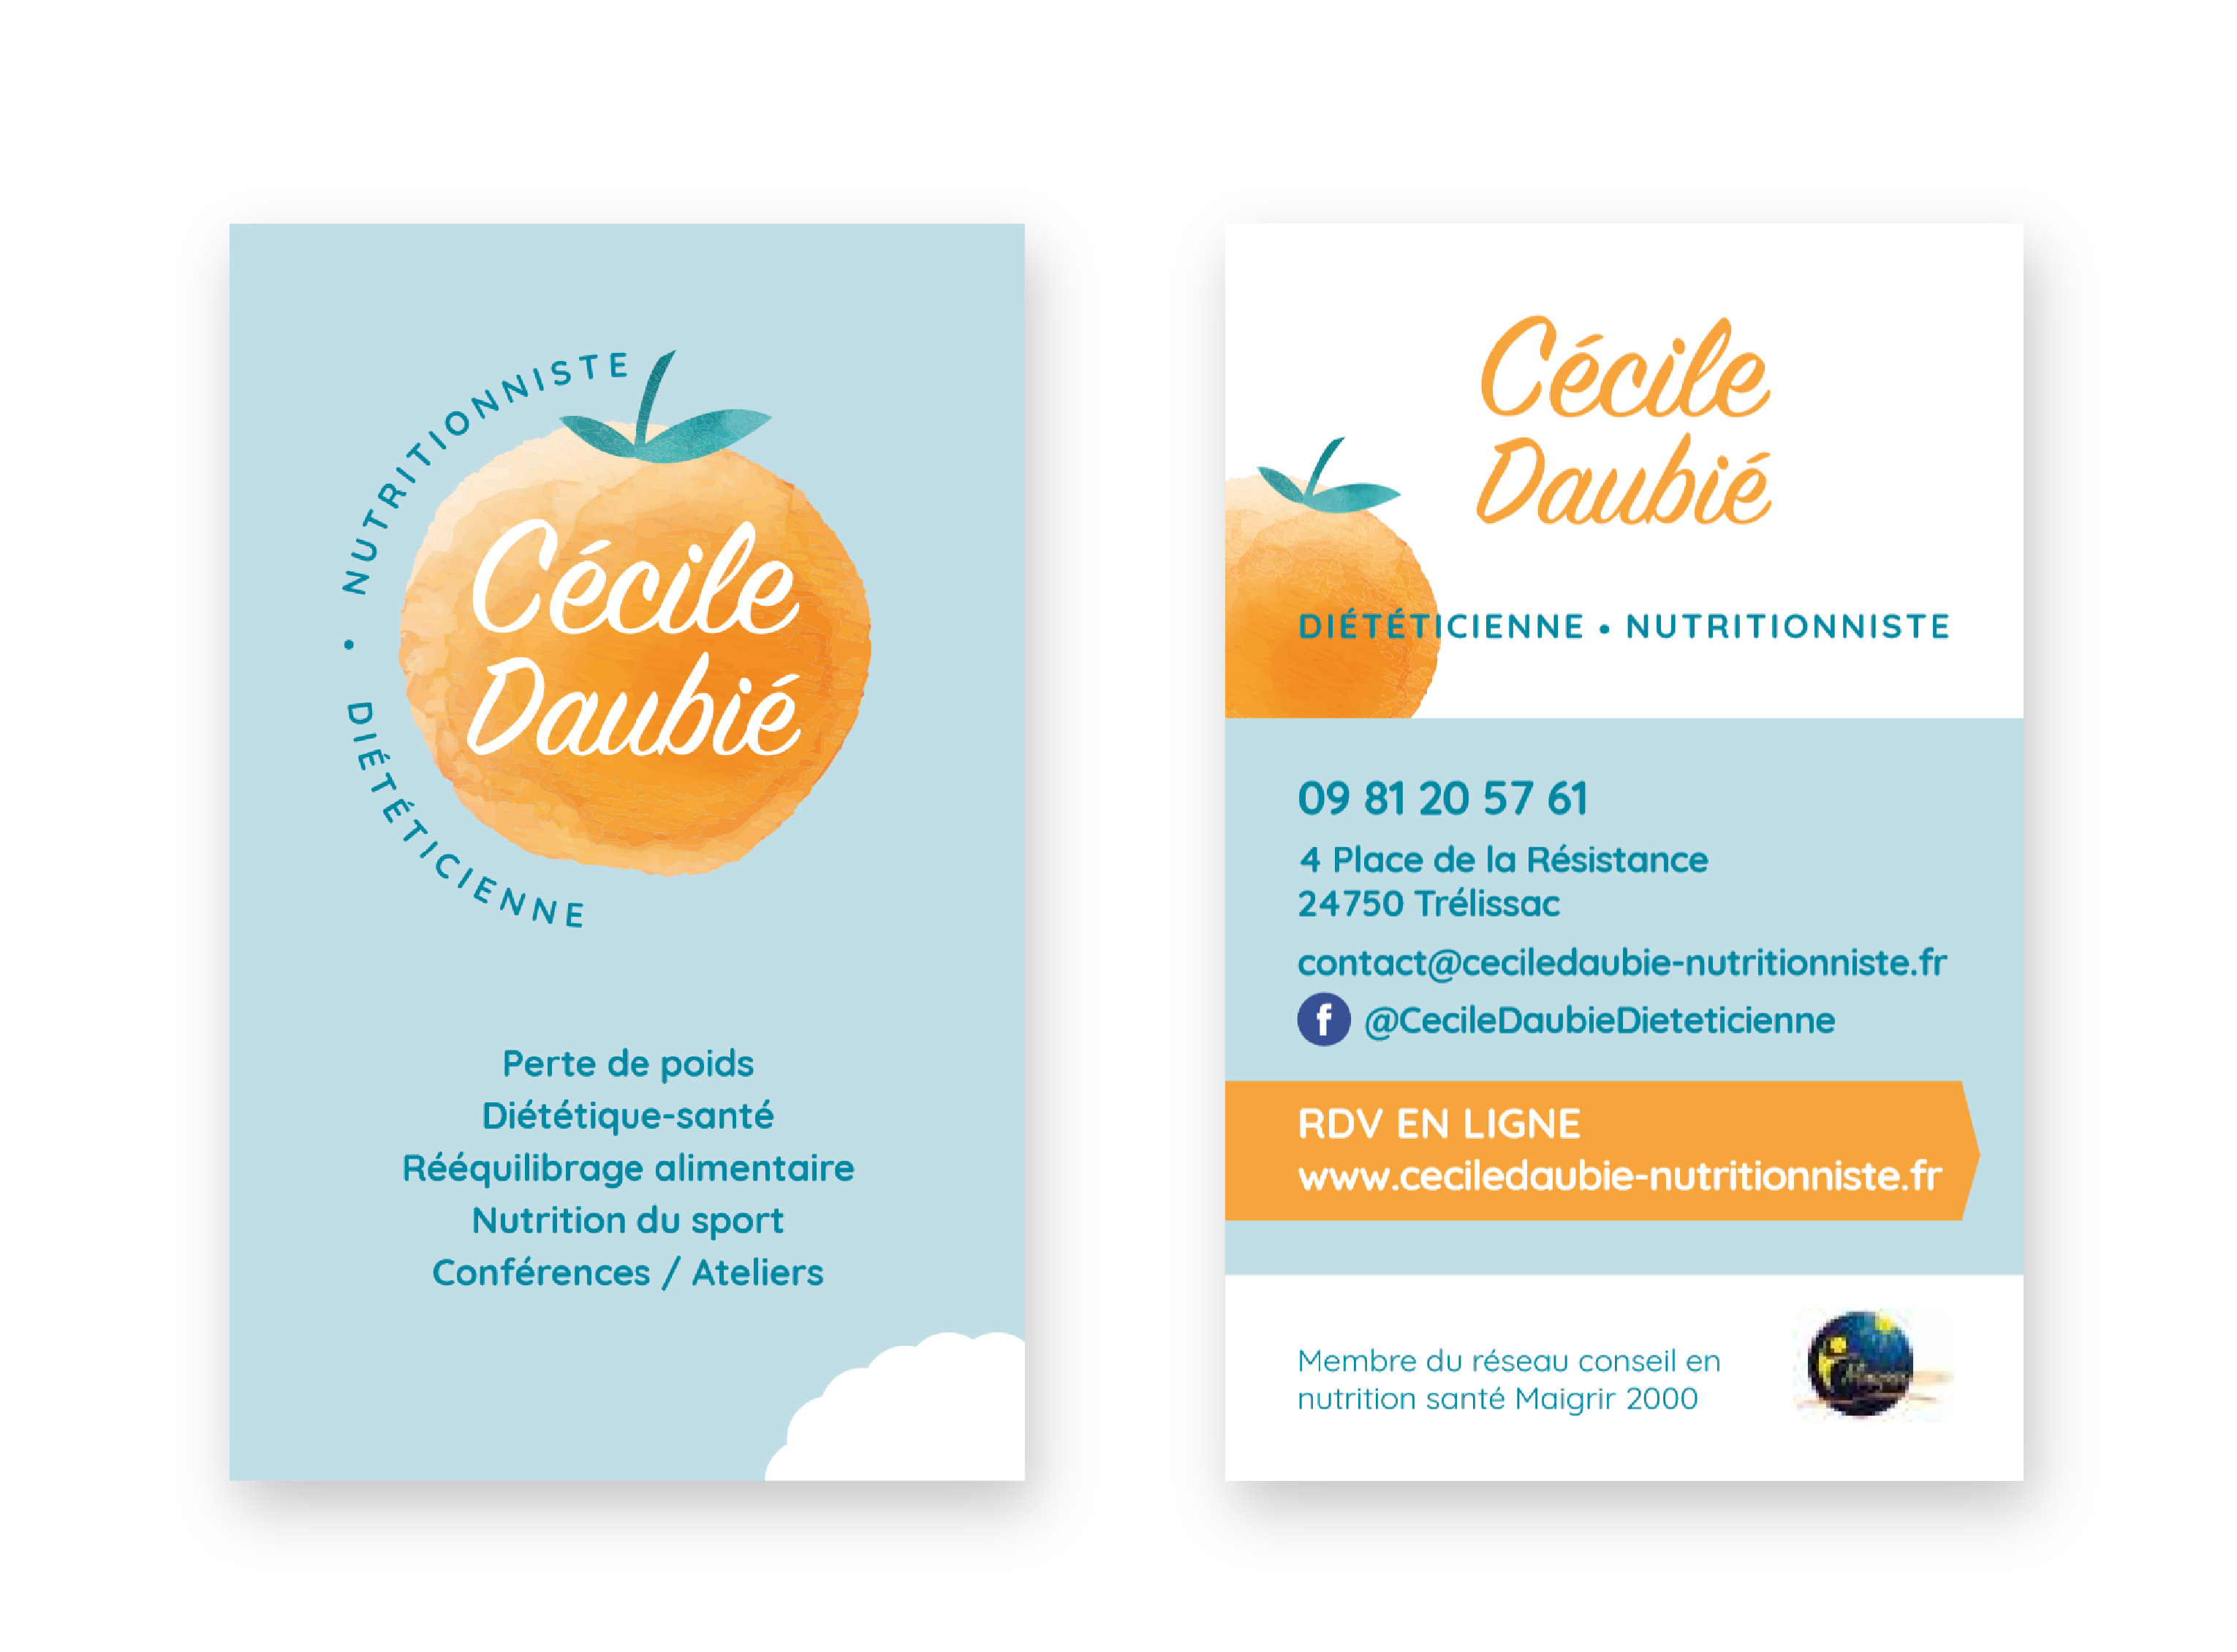 creation-cartes-de-visite-nutrionniste-dieticienne-cecile-daubie-dordogne